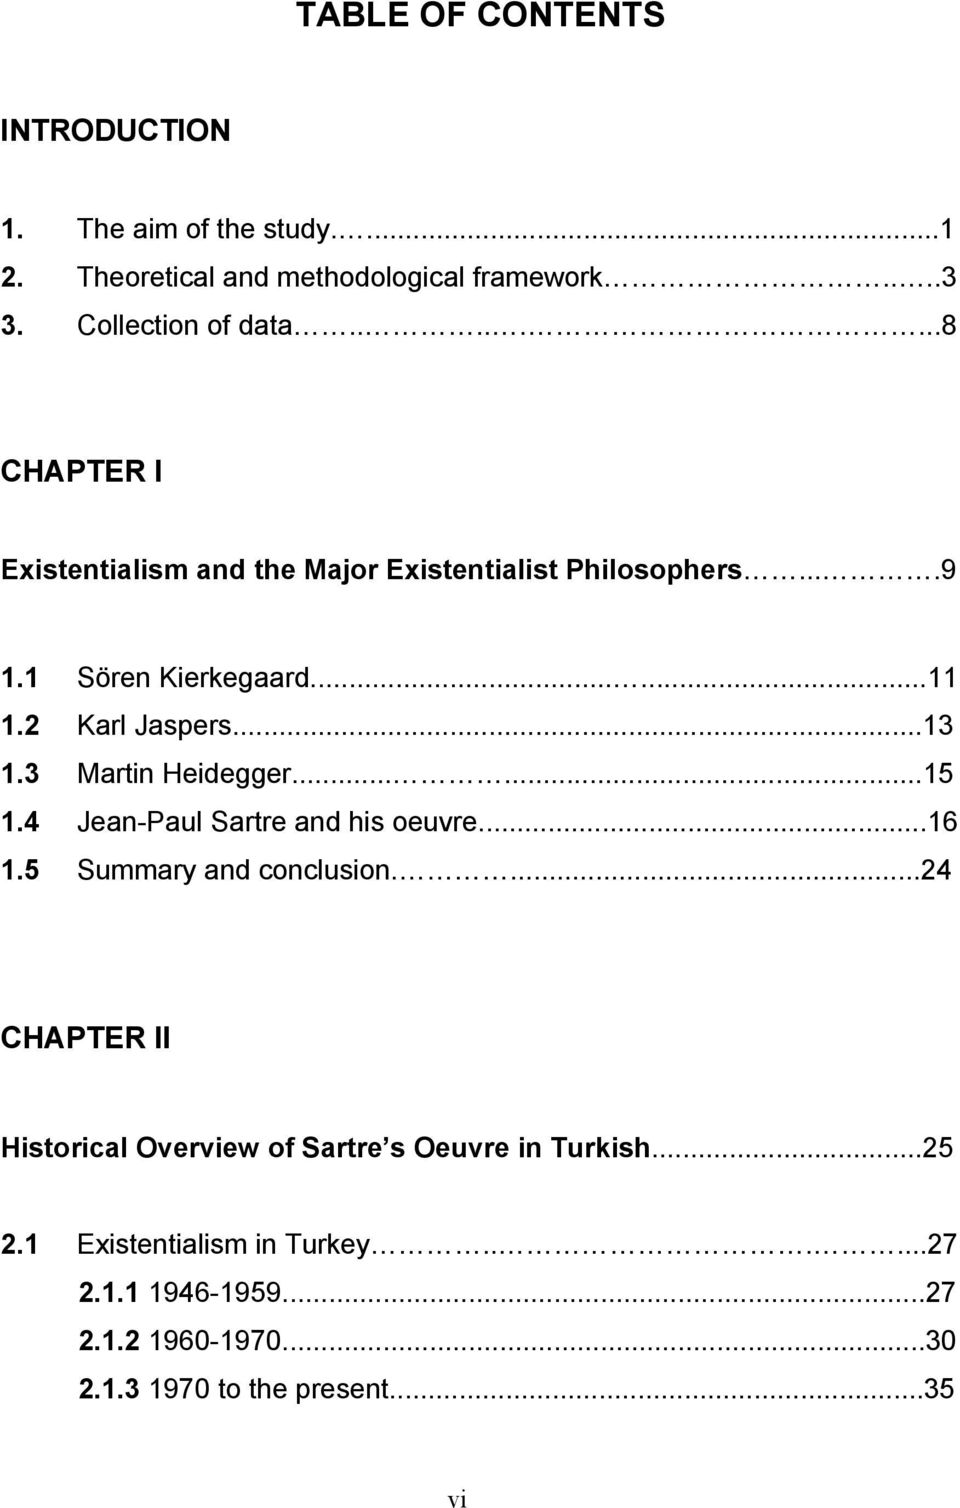 3 Martin Heidegger......15 1.4 Jean-Paul Sartre and his oeuvre...16 1.5 Summary and conclusion.